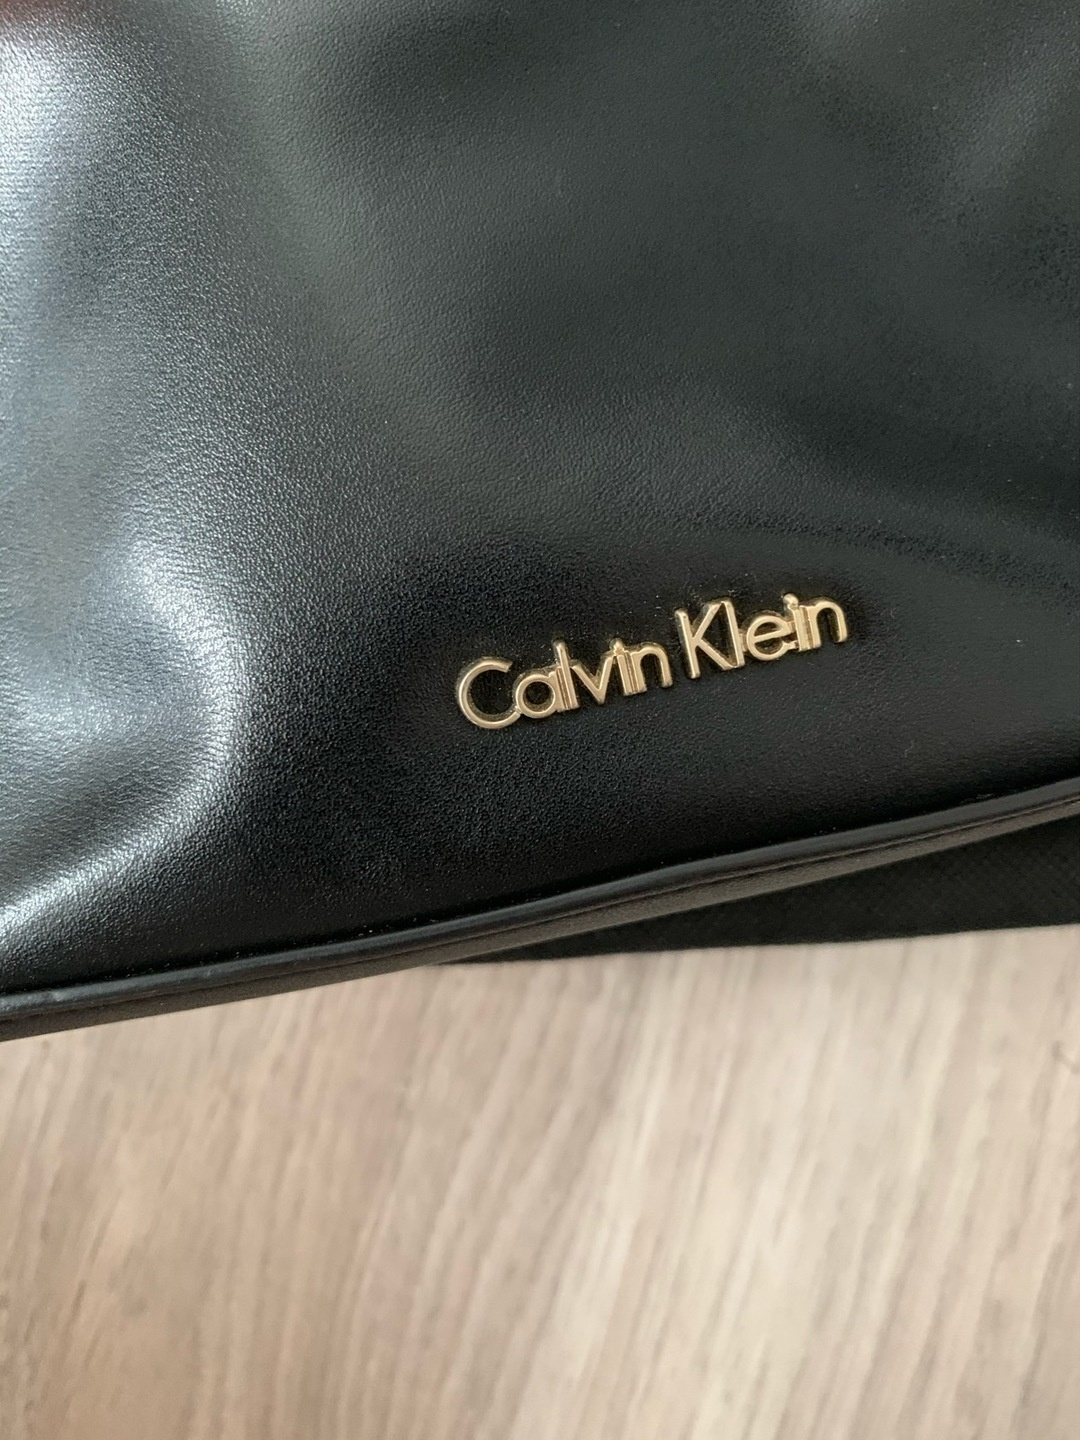 Women's bags & purses - CALVIN KLEIN photo 3